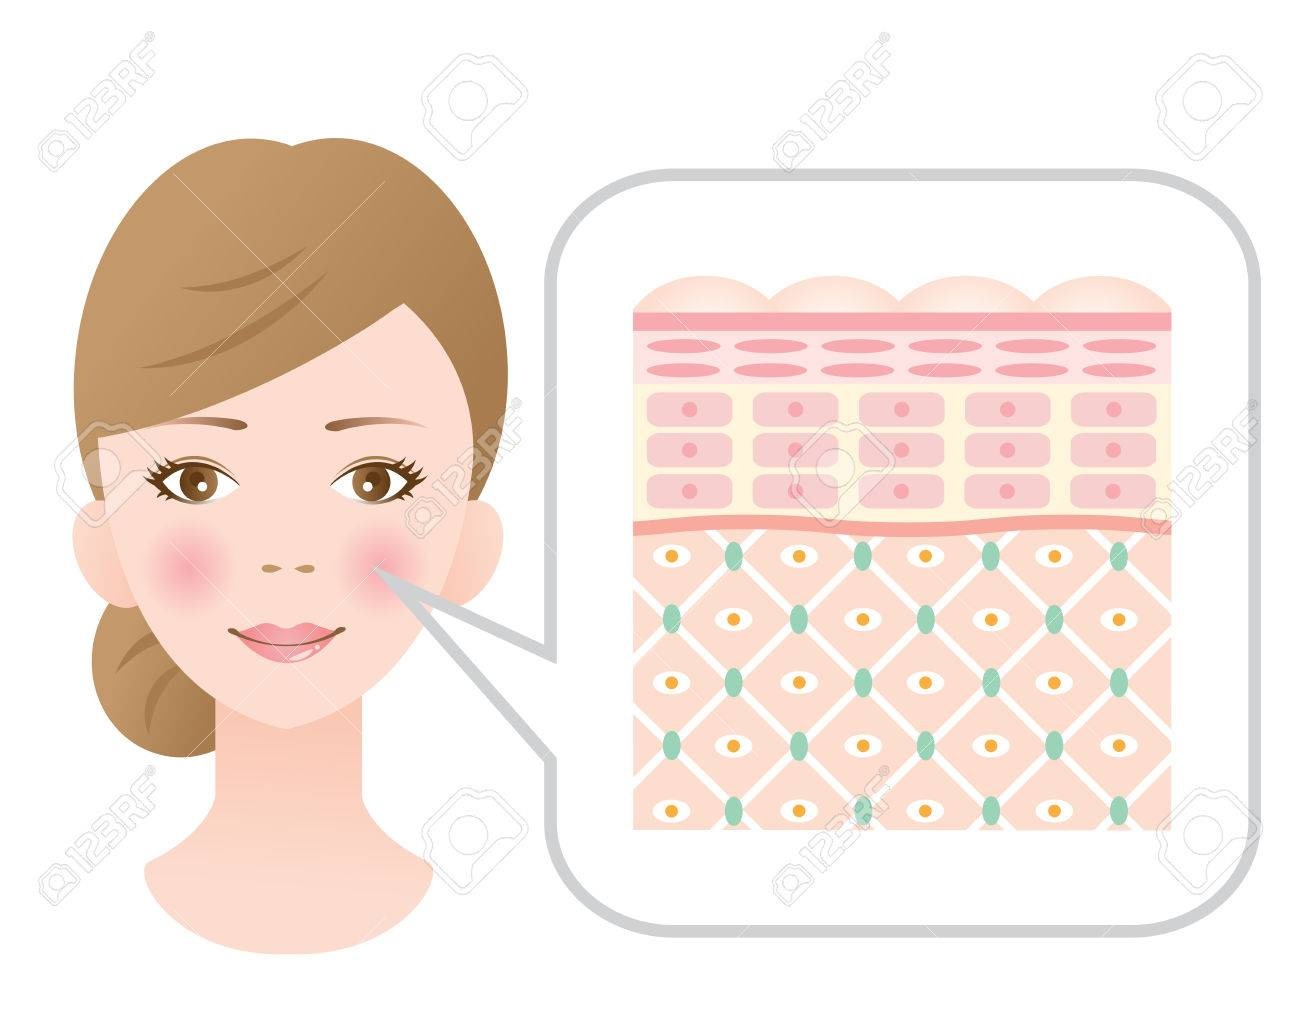 Diagram of young healthy skin showing the collagen framework is healthy. - 75454331